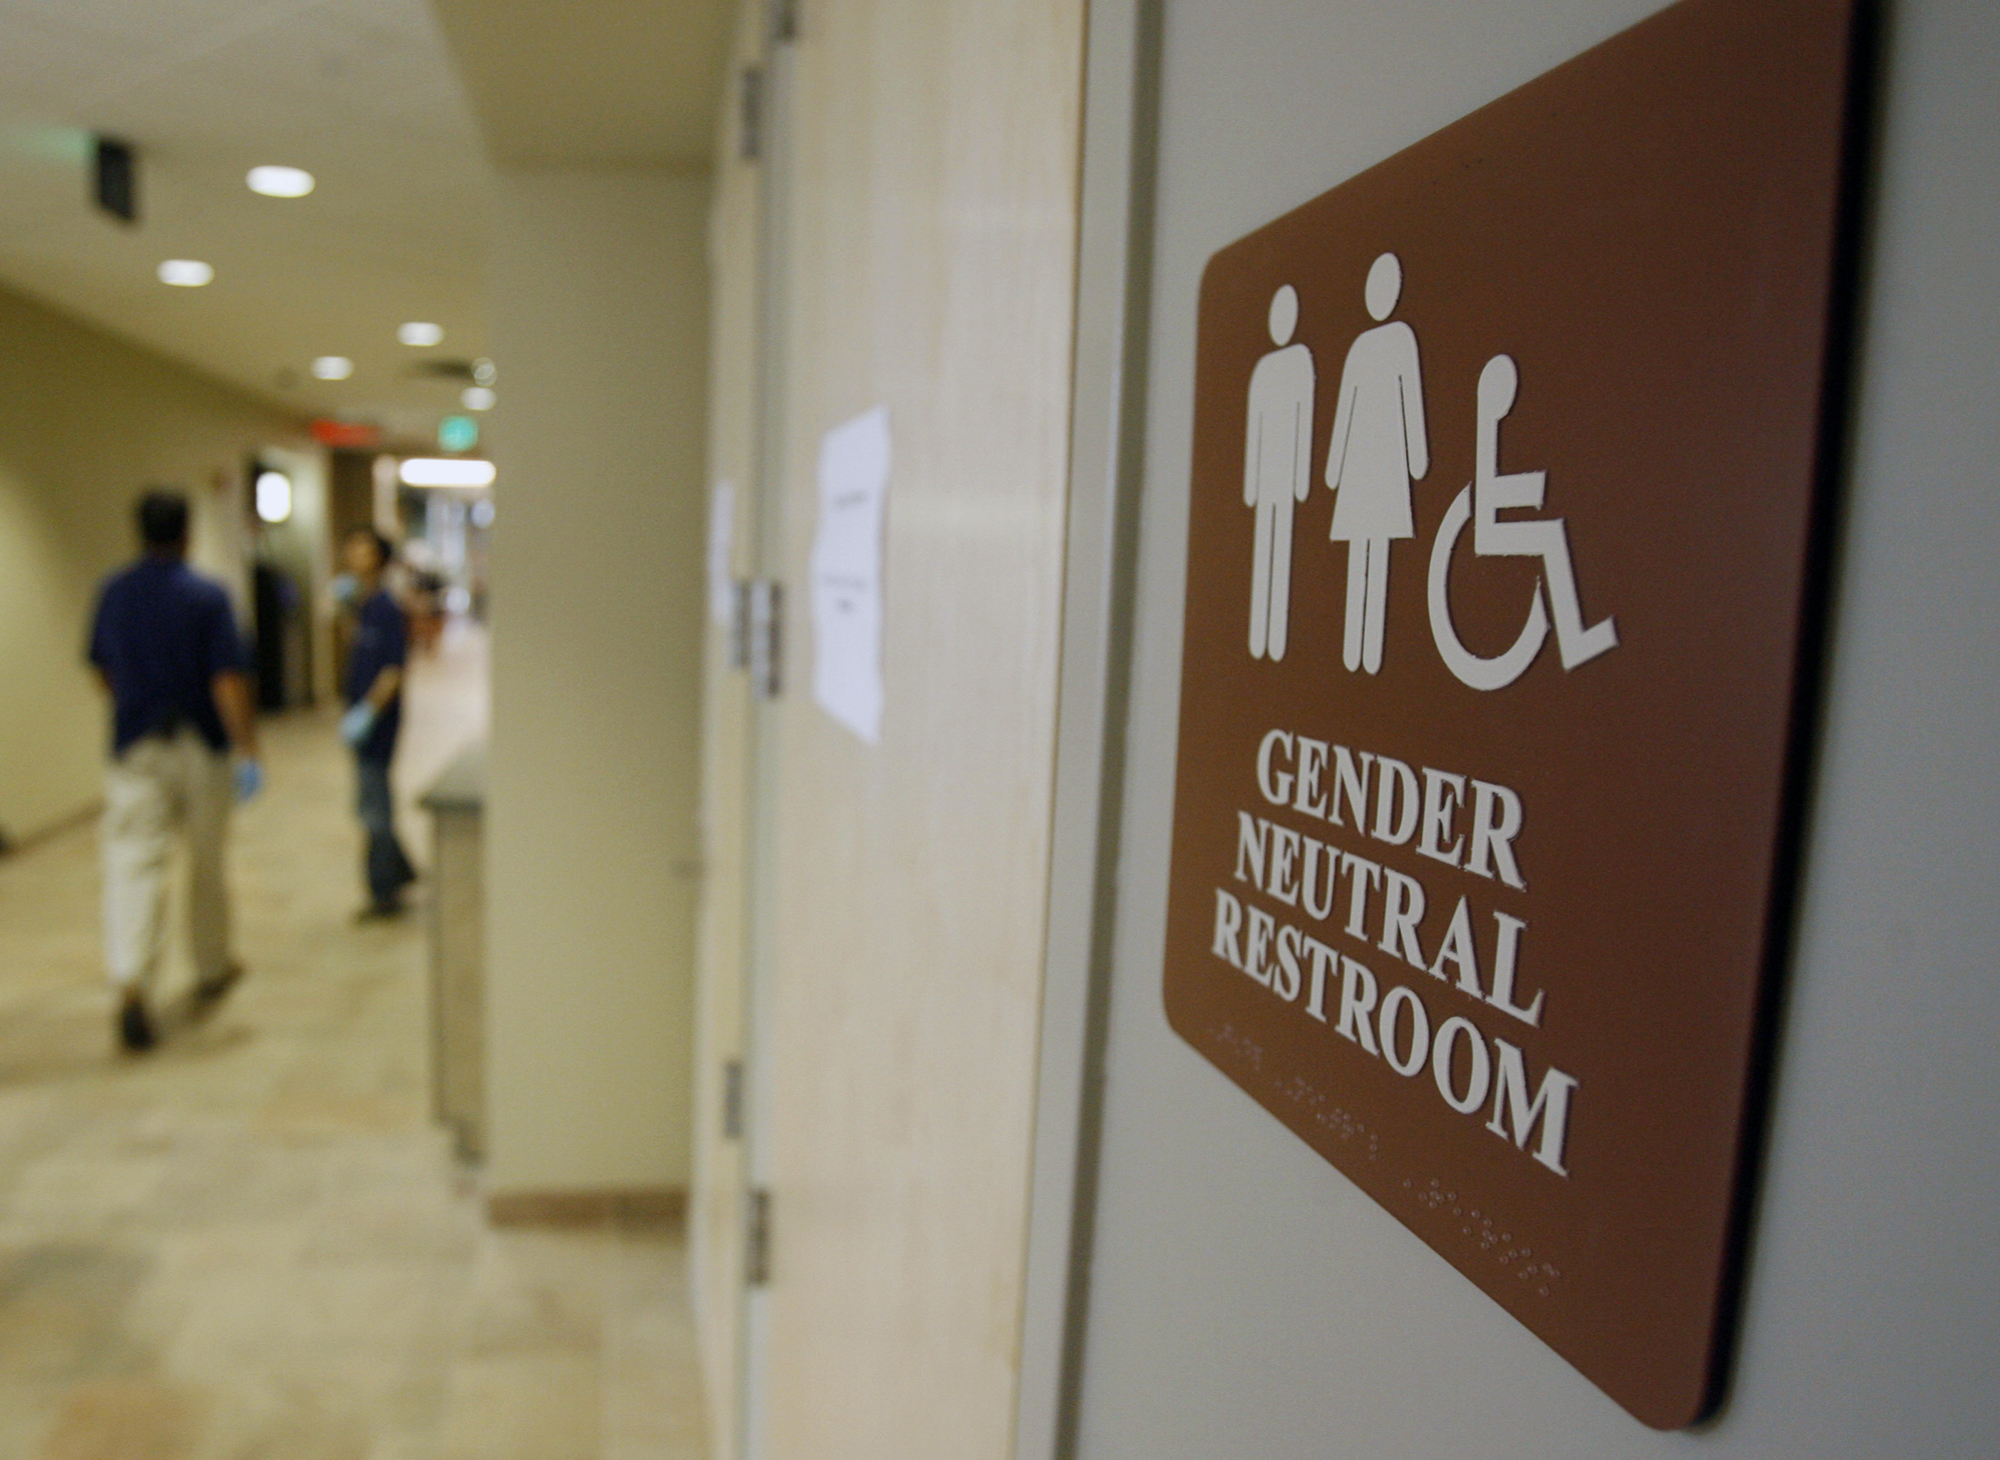 Going to the bathroom at school - Cbs Nyt Poll Americans Divided Over Transgender Bathroom Laws Scotus Nomination Cbs News